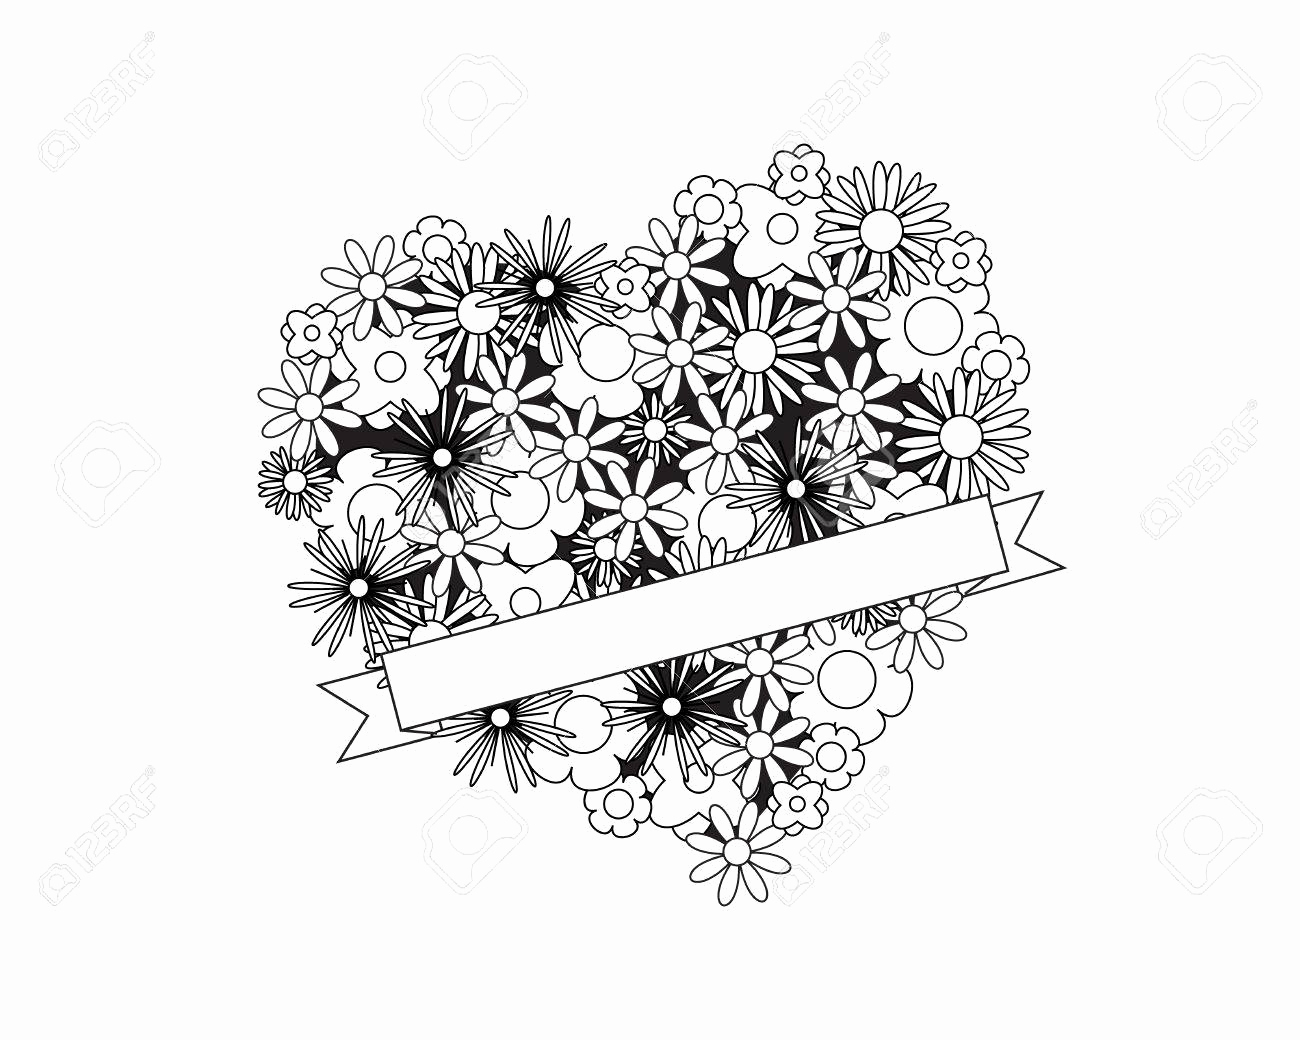 christmas coloring pages for kids Collection-Christmas Coloring Pages Rudolph Cool Coloring Page for Adult Od Kids Simple Floral Heart with Ribbon 20-f